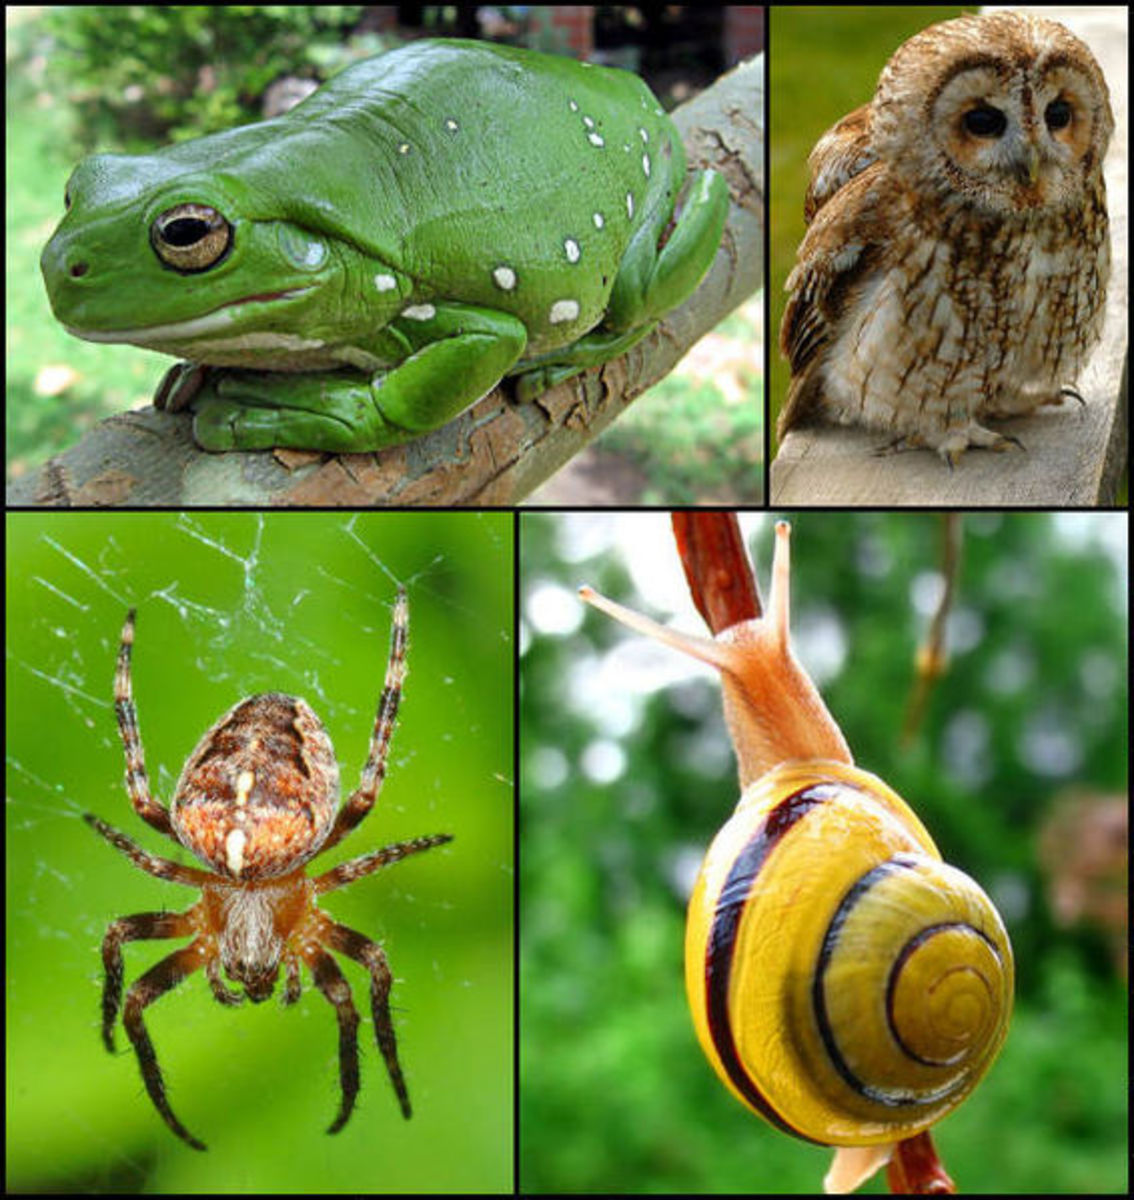 Animal life has evolved an enormous array of different forms.